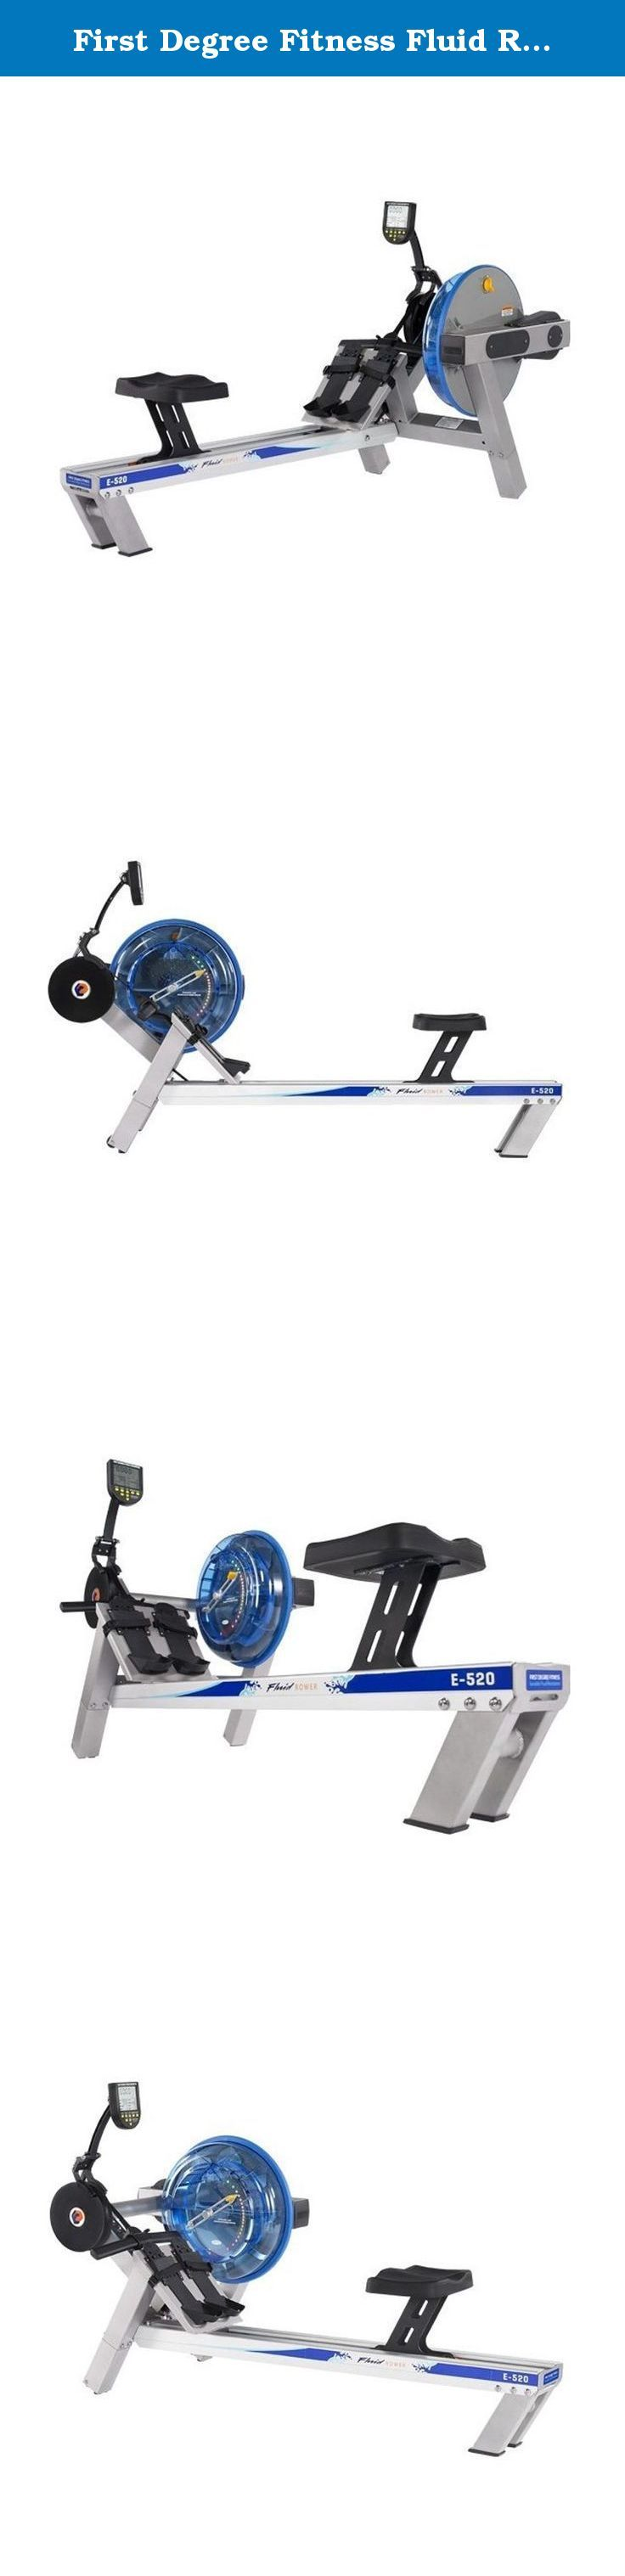 First Degree Fitness Fluid Rower with Heart Rate Reception, E520 - Silver Bronze - Evolution Series. First Degree Fitness gives you one of the most effective low-impact, non-jarring, total body cardio-respiratory workout machines that utilizes all major muscle groups including the back, legs, arms, abdominals, and buttocks. This high-end home and commercial fitness equipment is made to deliver a close emulation of real on-water rowing. The shorter length, higher seat height, molded seat…